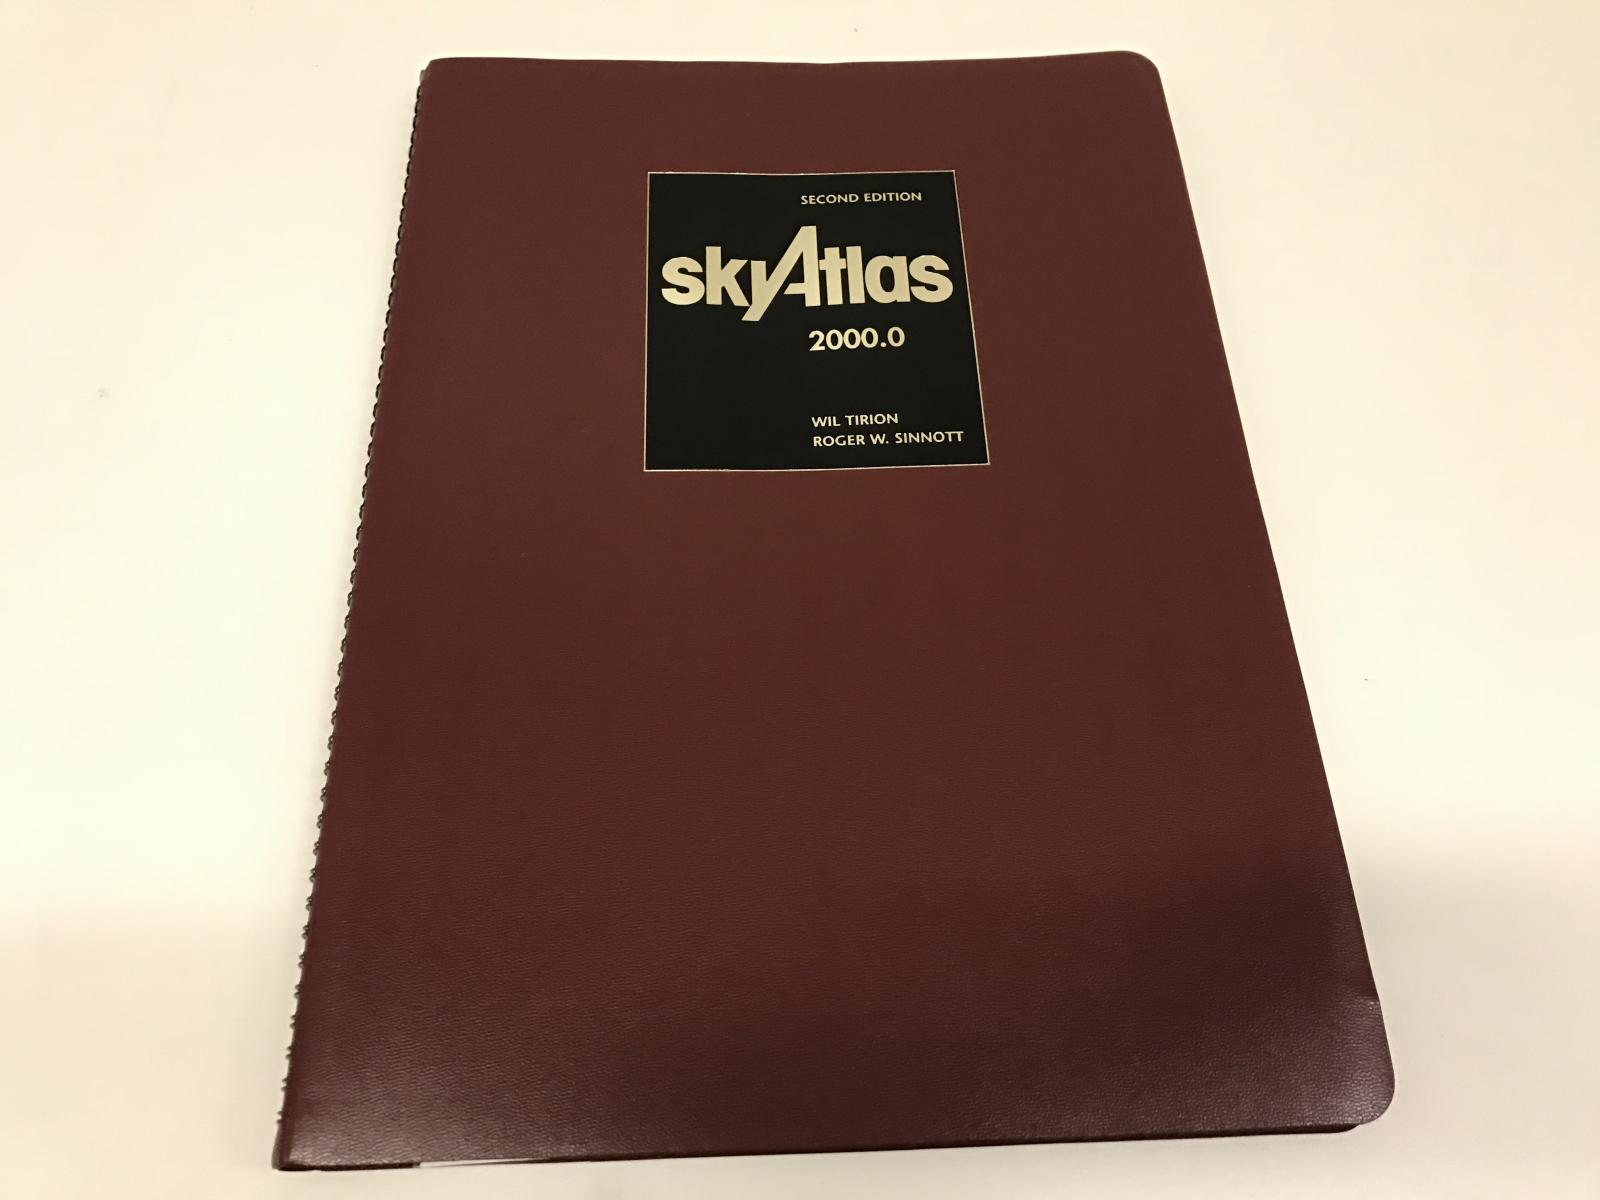 Sky atlas 2000.0 2nd deluxe laminated version spiral bound